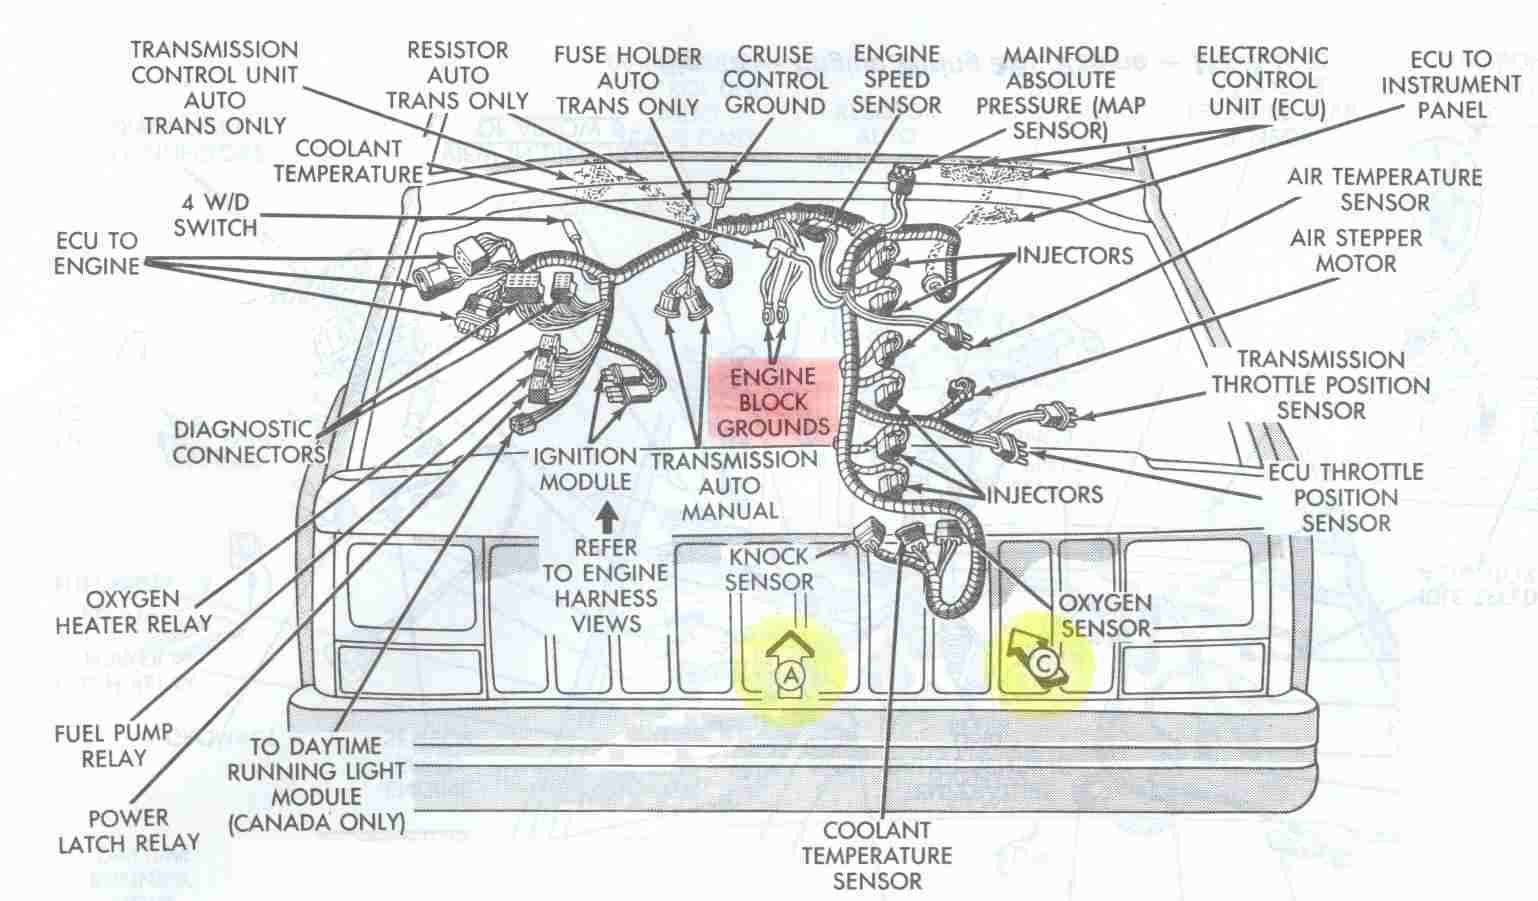 ab0134a7d9e021431187af597eb4aeca engine bay schematic showing major electrical ground points for 1998 jeep cherokee wiring schematic at alyssarenee.co